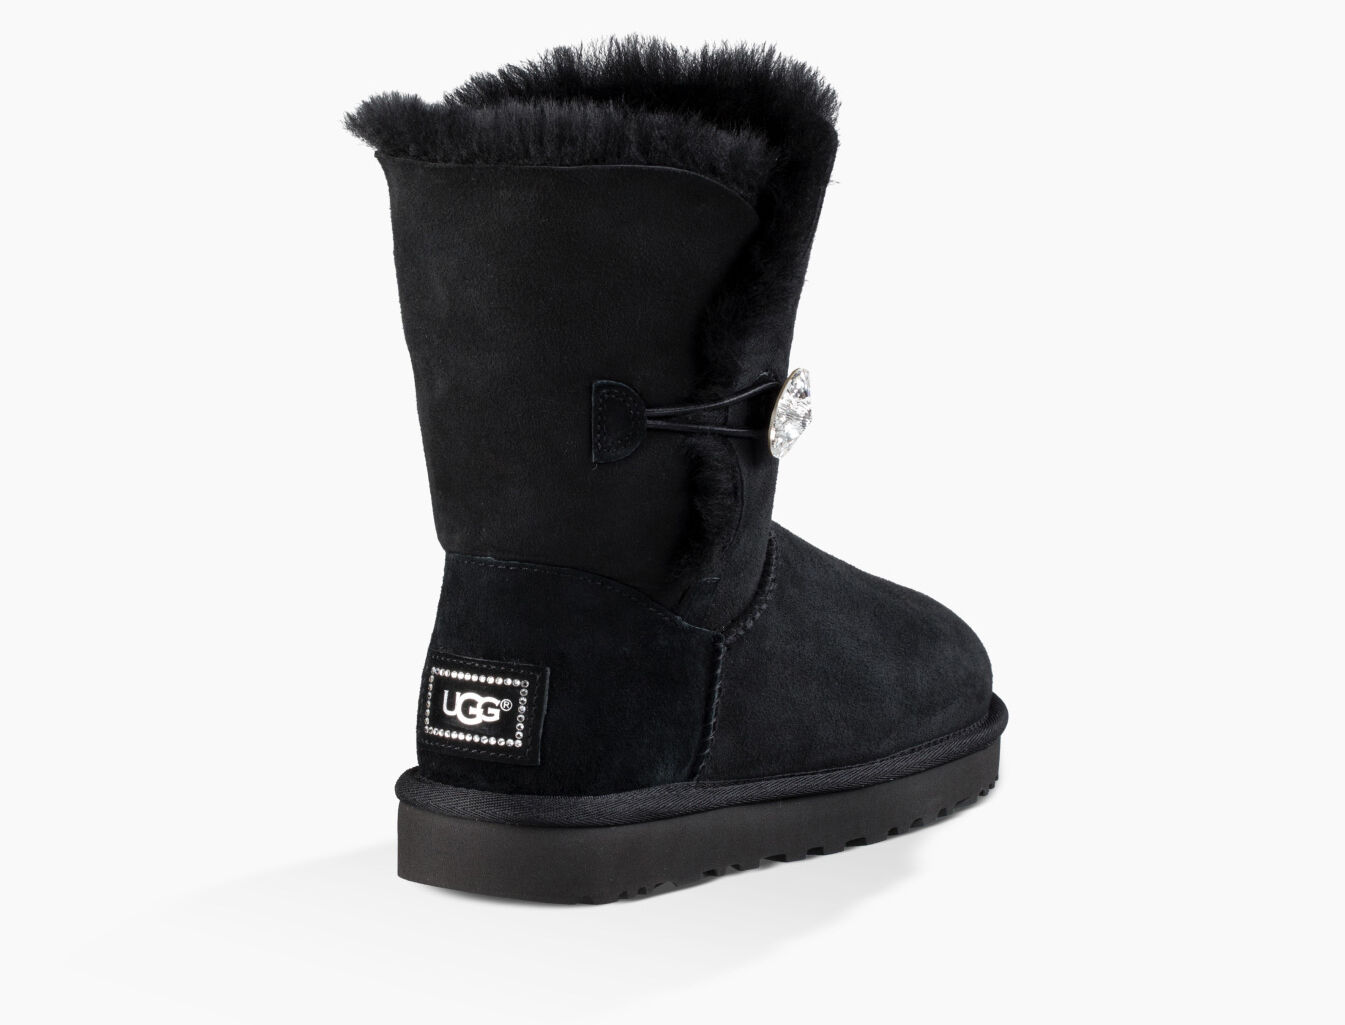 black ugg boots with buttons